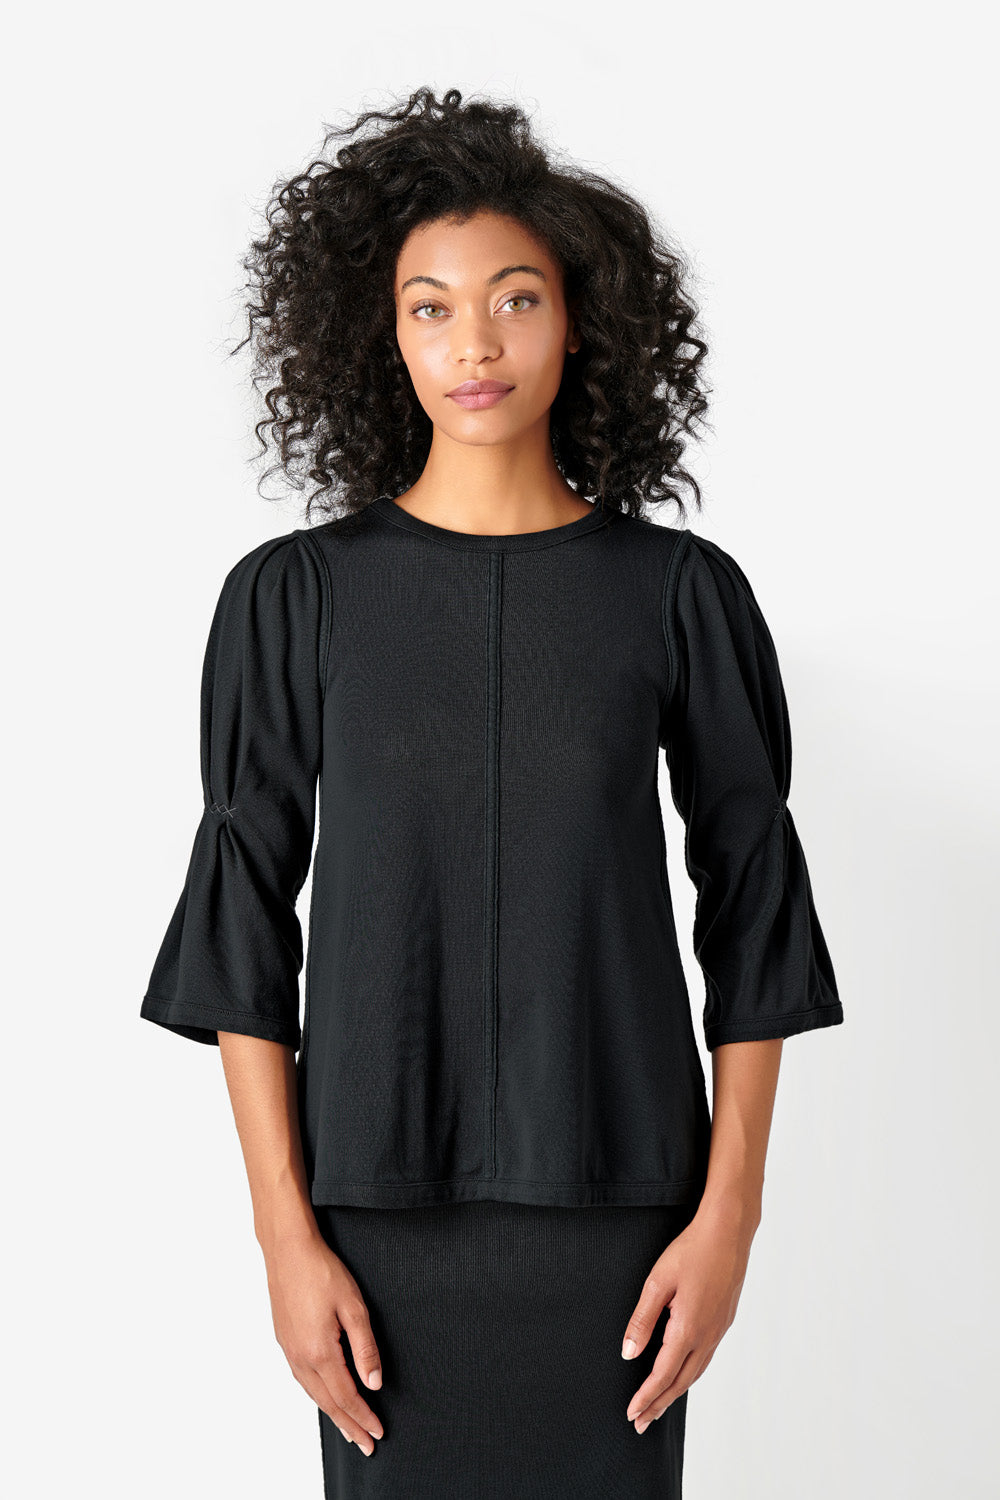 Alabama Chanin Willie Top Organic Cotton Elbow Sleeve top in Black on Model